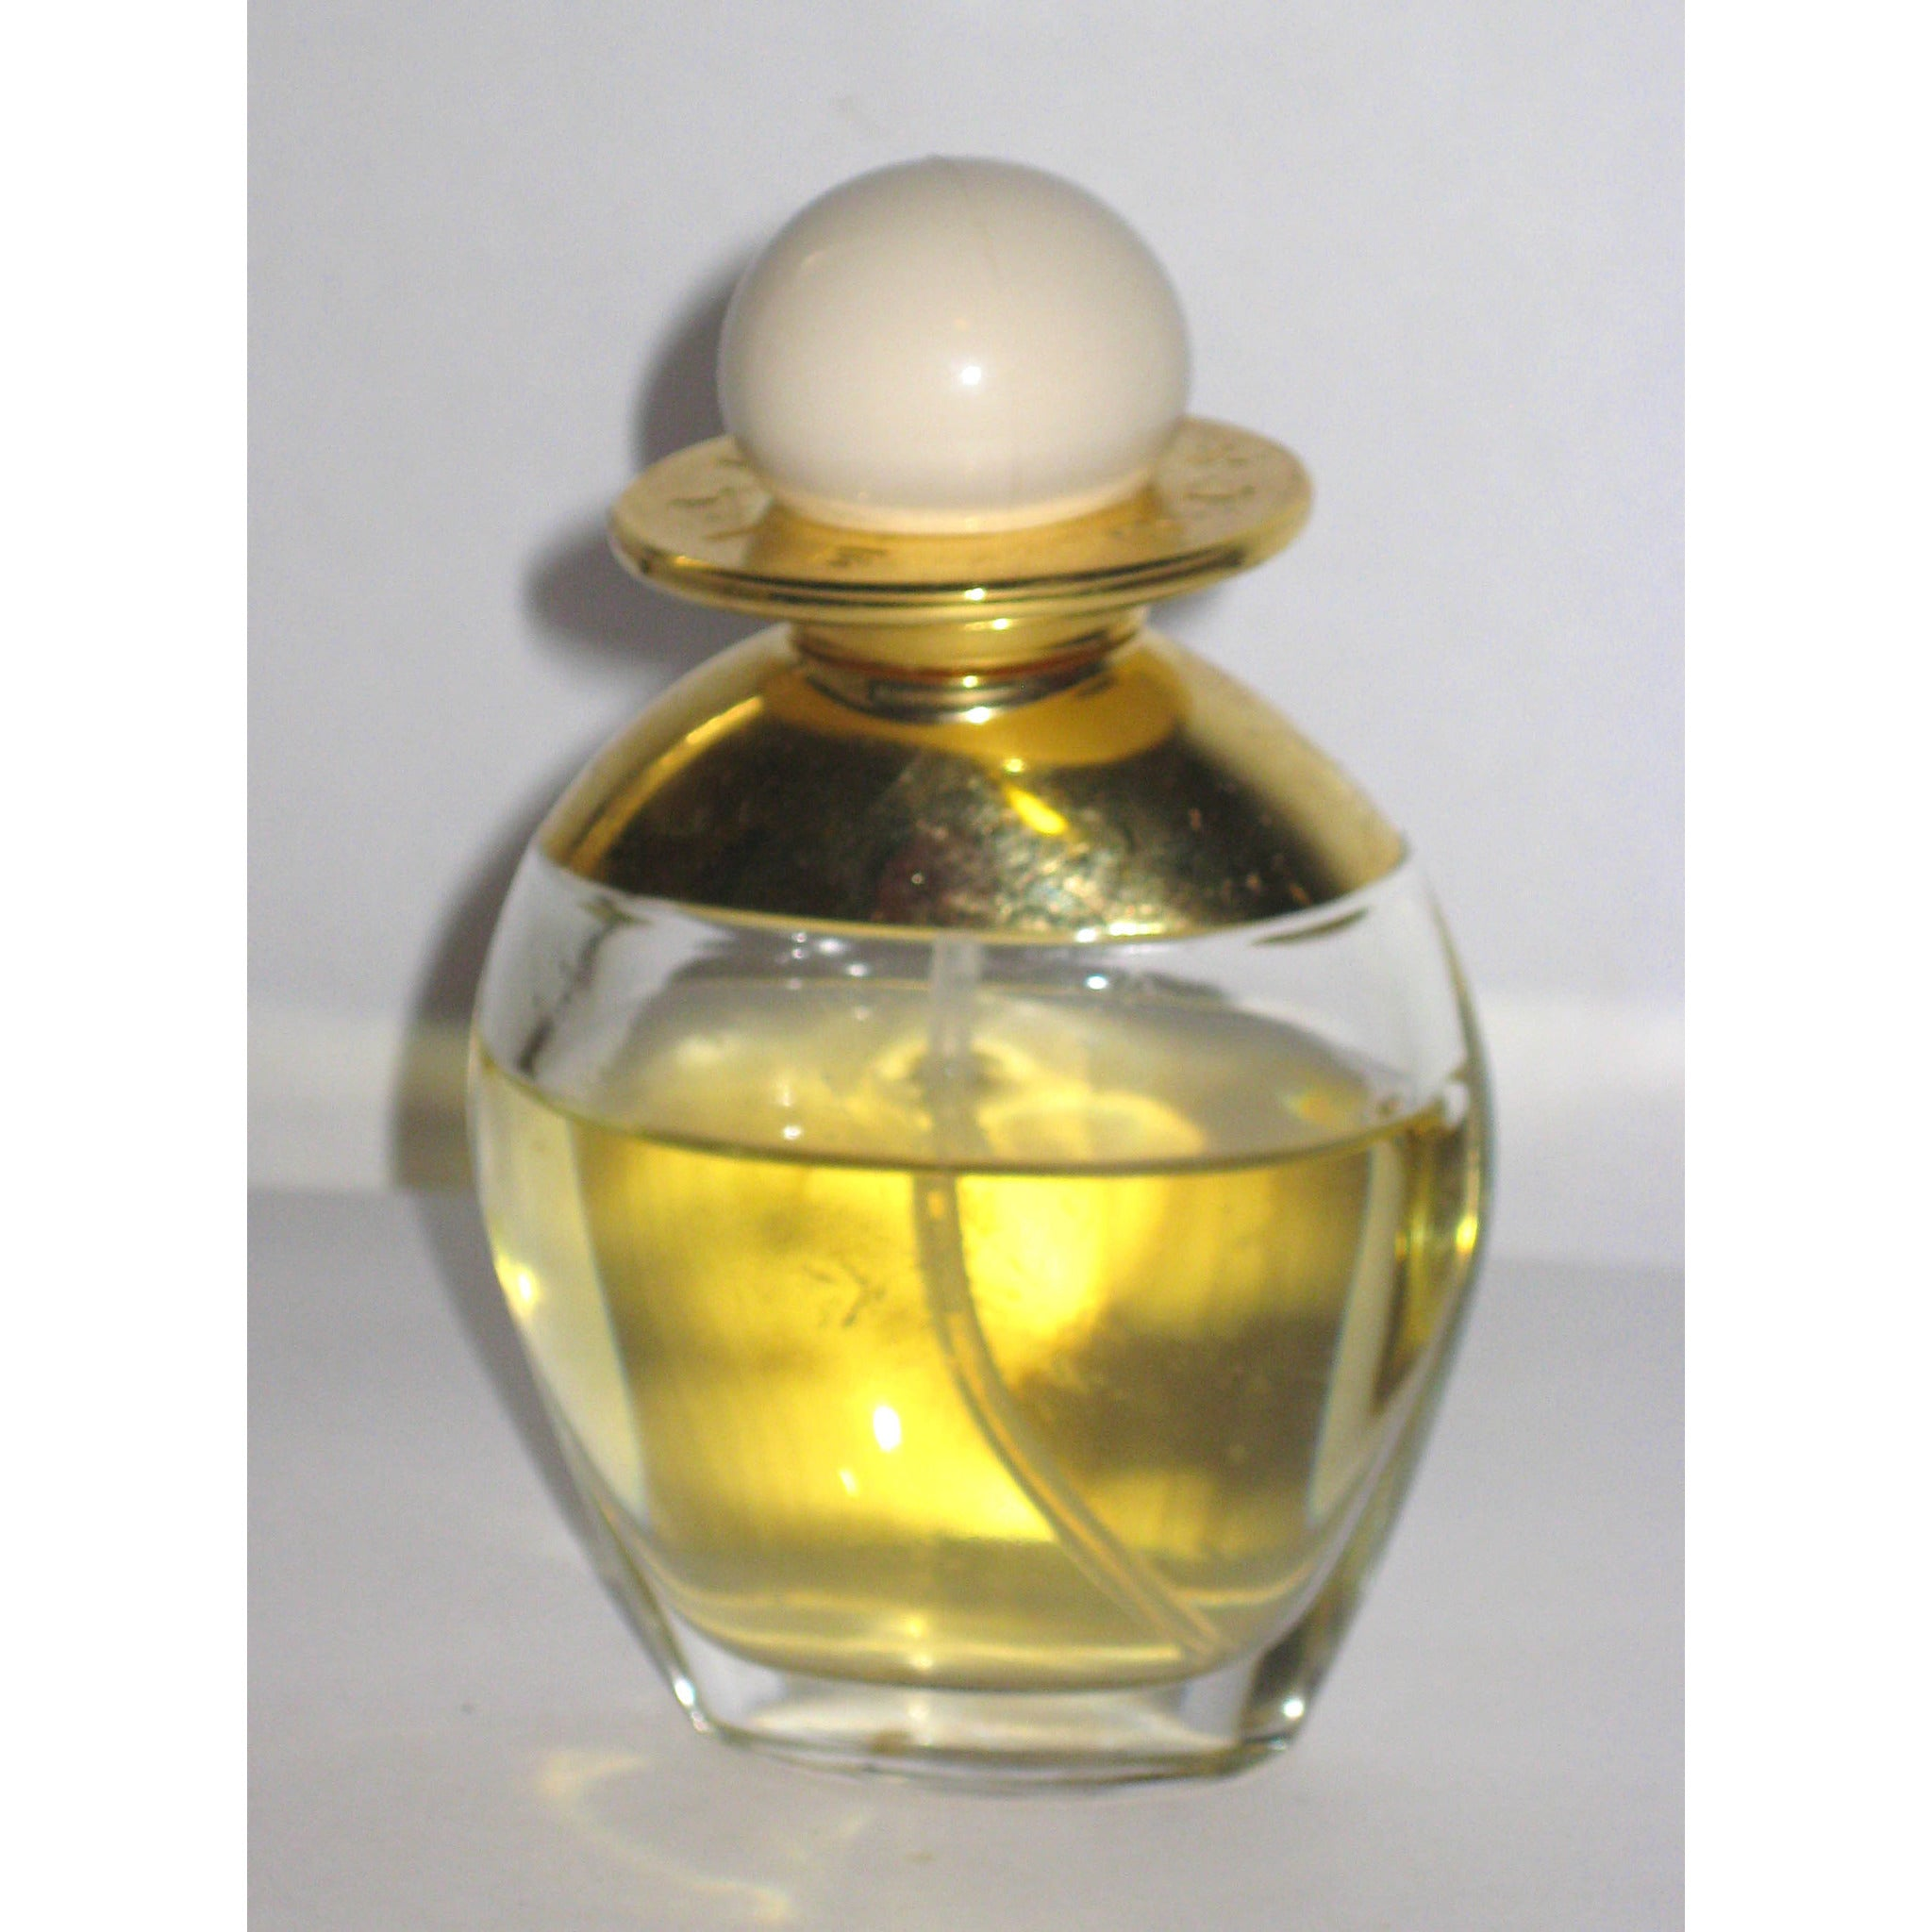 Discontinued Nude Cologne By Bill Blass